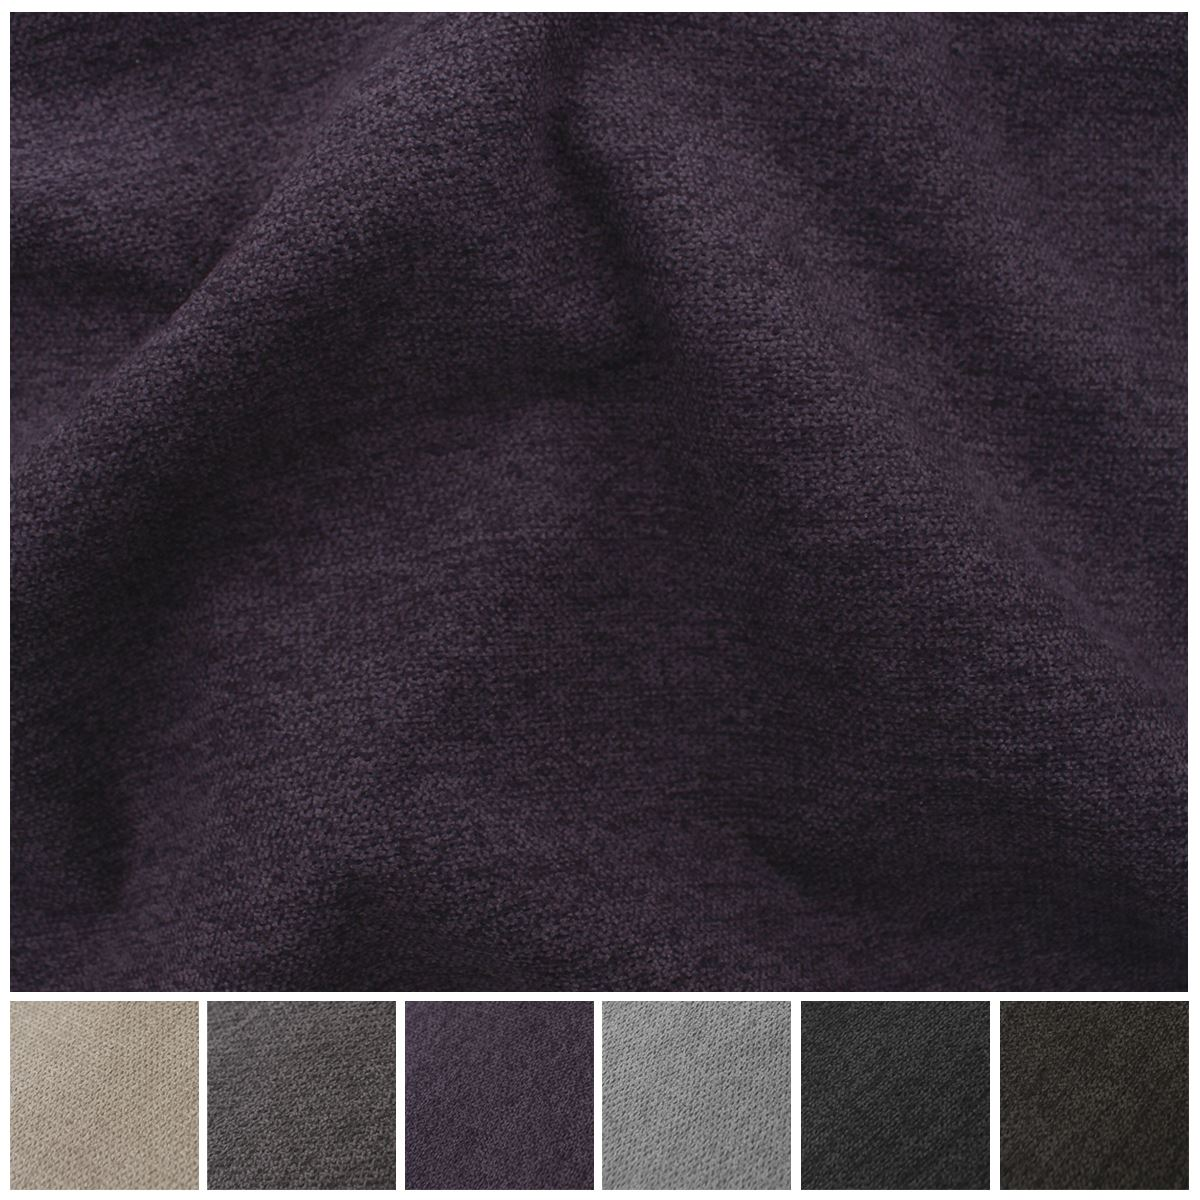 NAPLES VELVET UPHOLSTERY DECOR CURTAINS SOFA FABRIC AVAILABLE IN 10 COLOURS